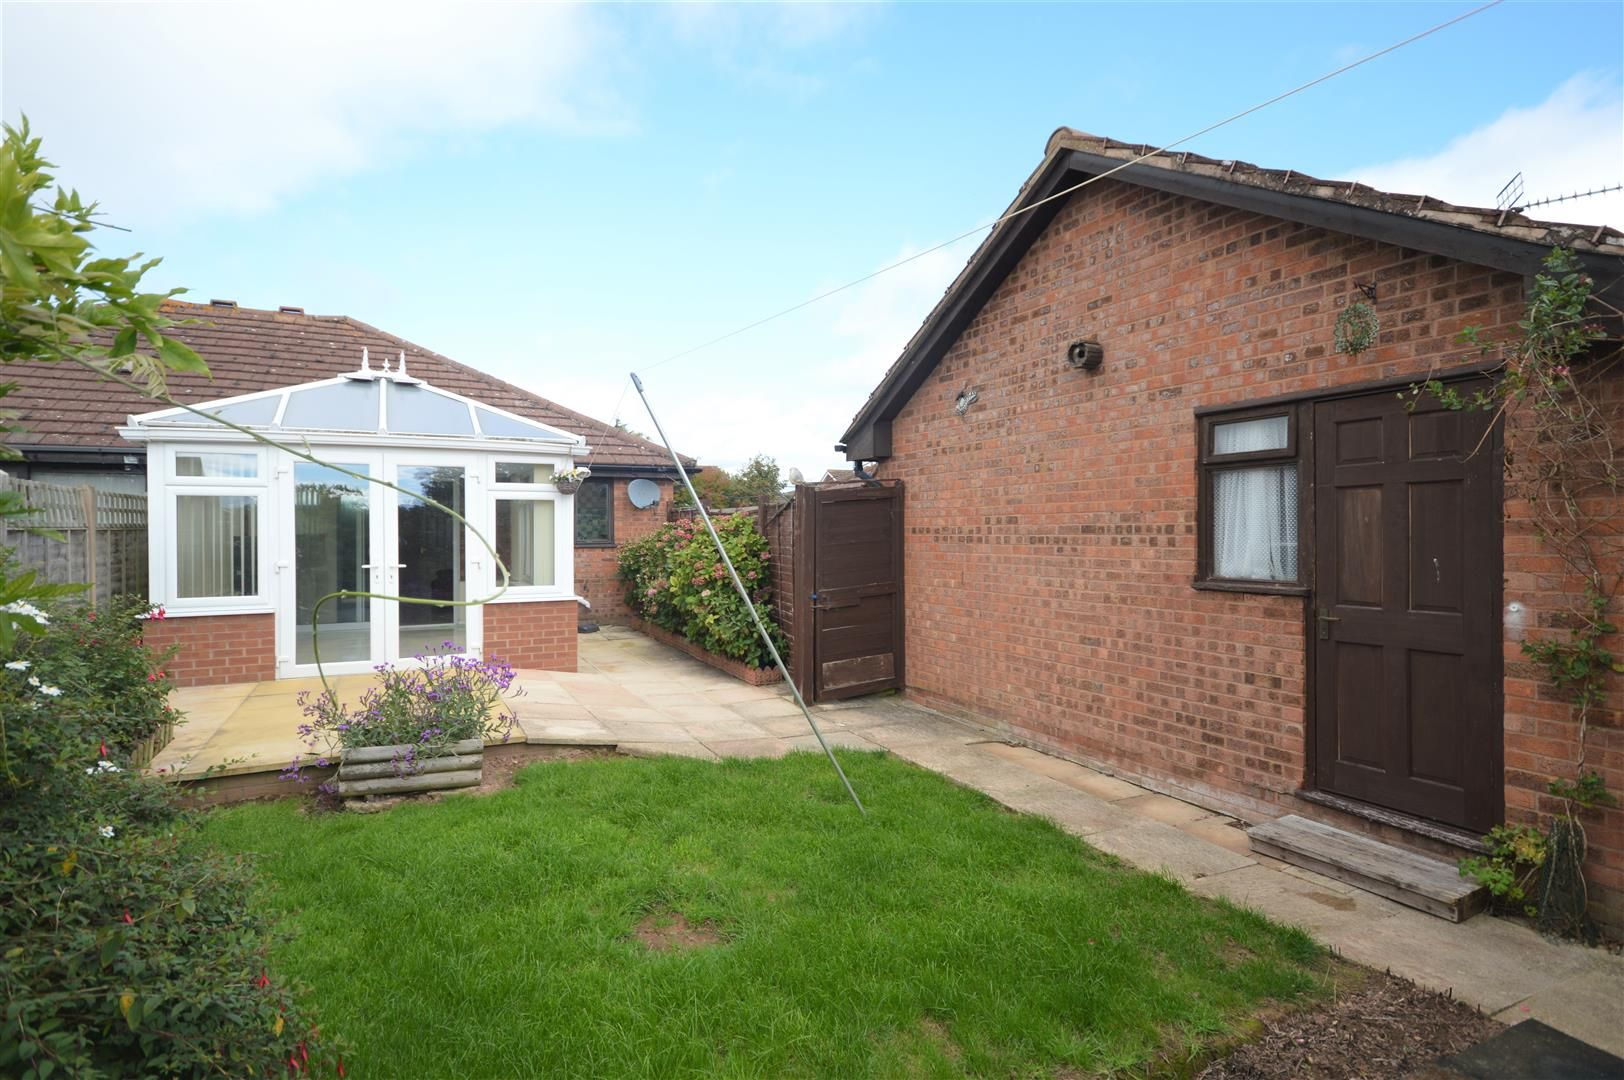 2 bed semi-detached bungalow for sale in Leominster  - Property Image 10